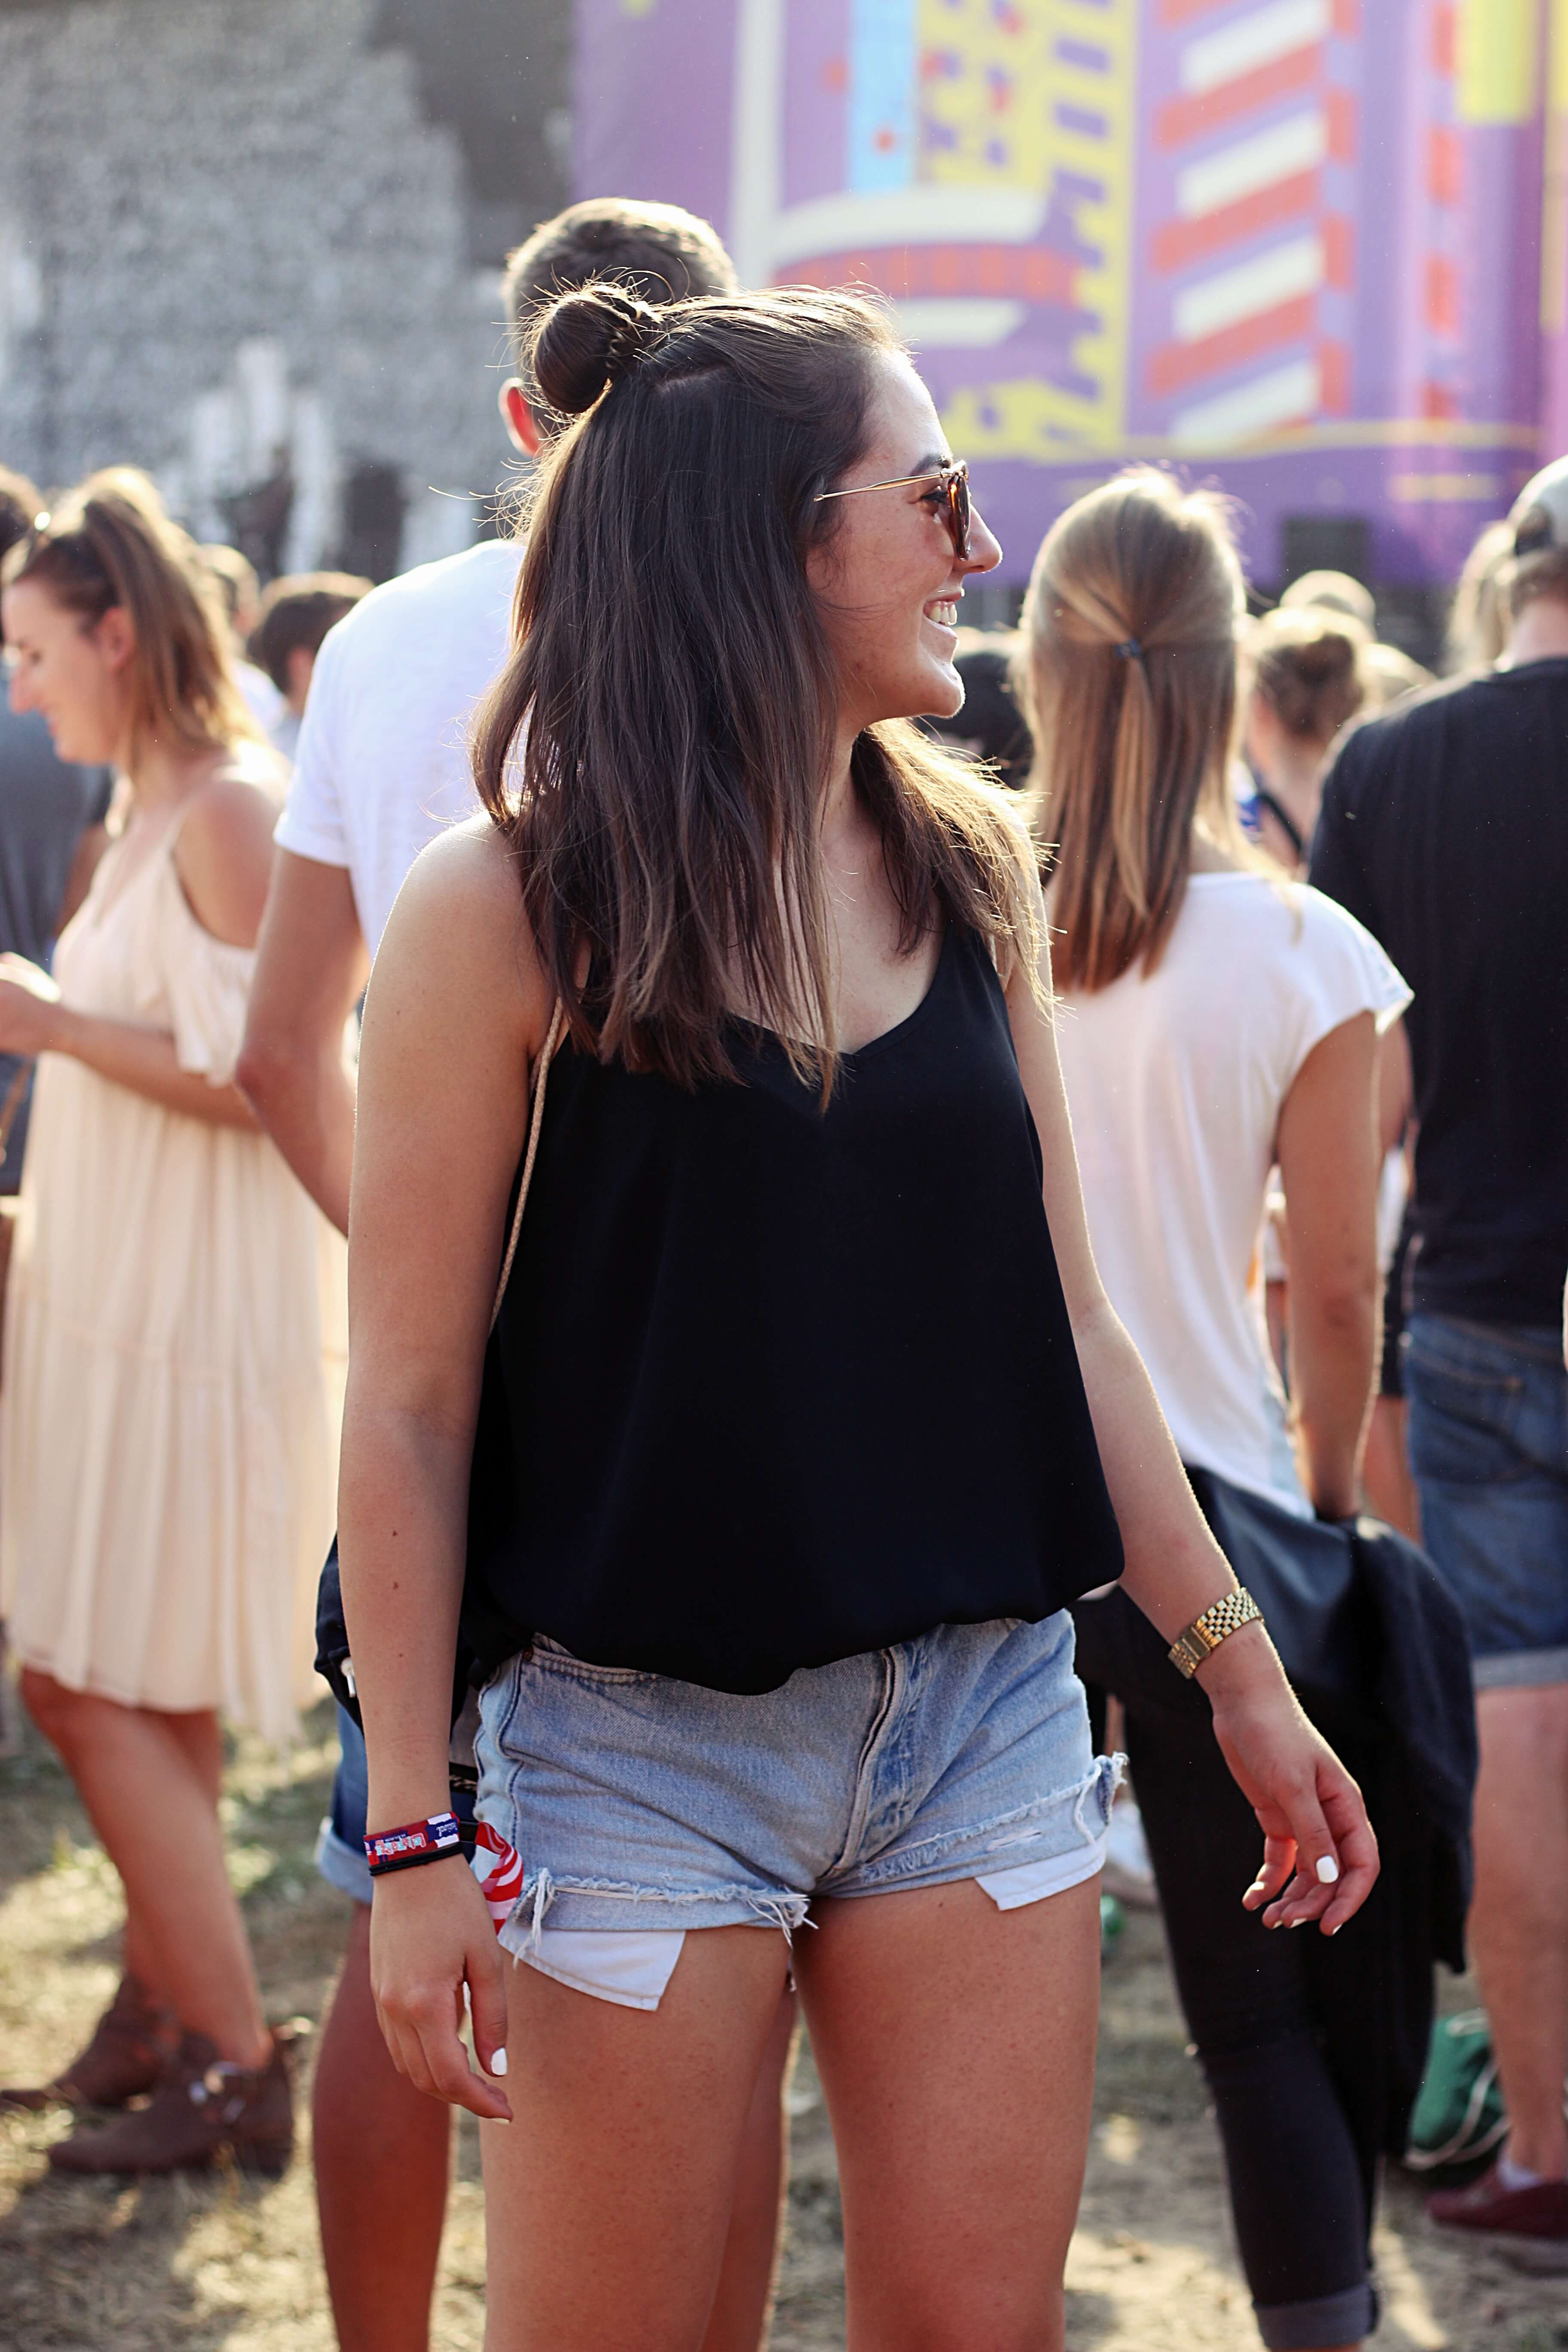 festival-lollapalooza-berlin-fithealthydi-diana-outfit-levis-501